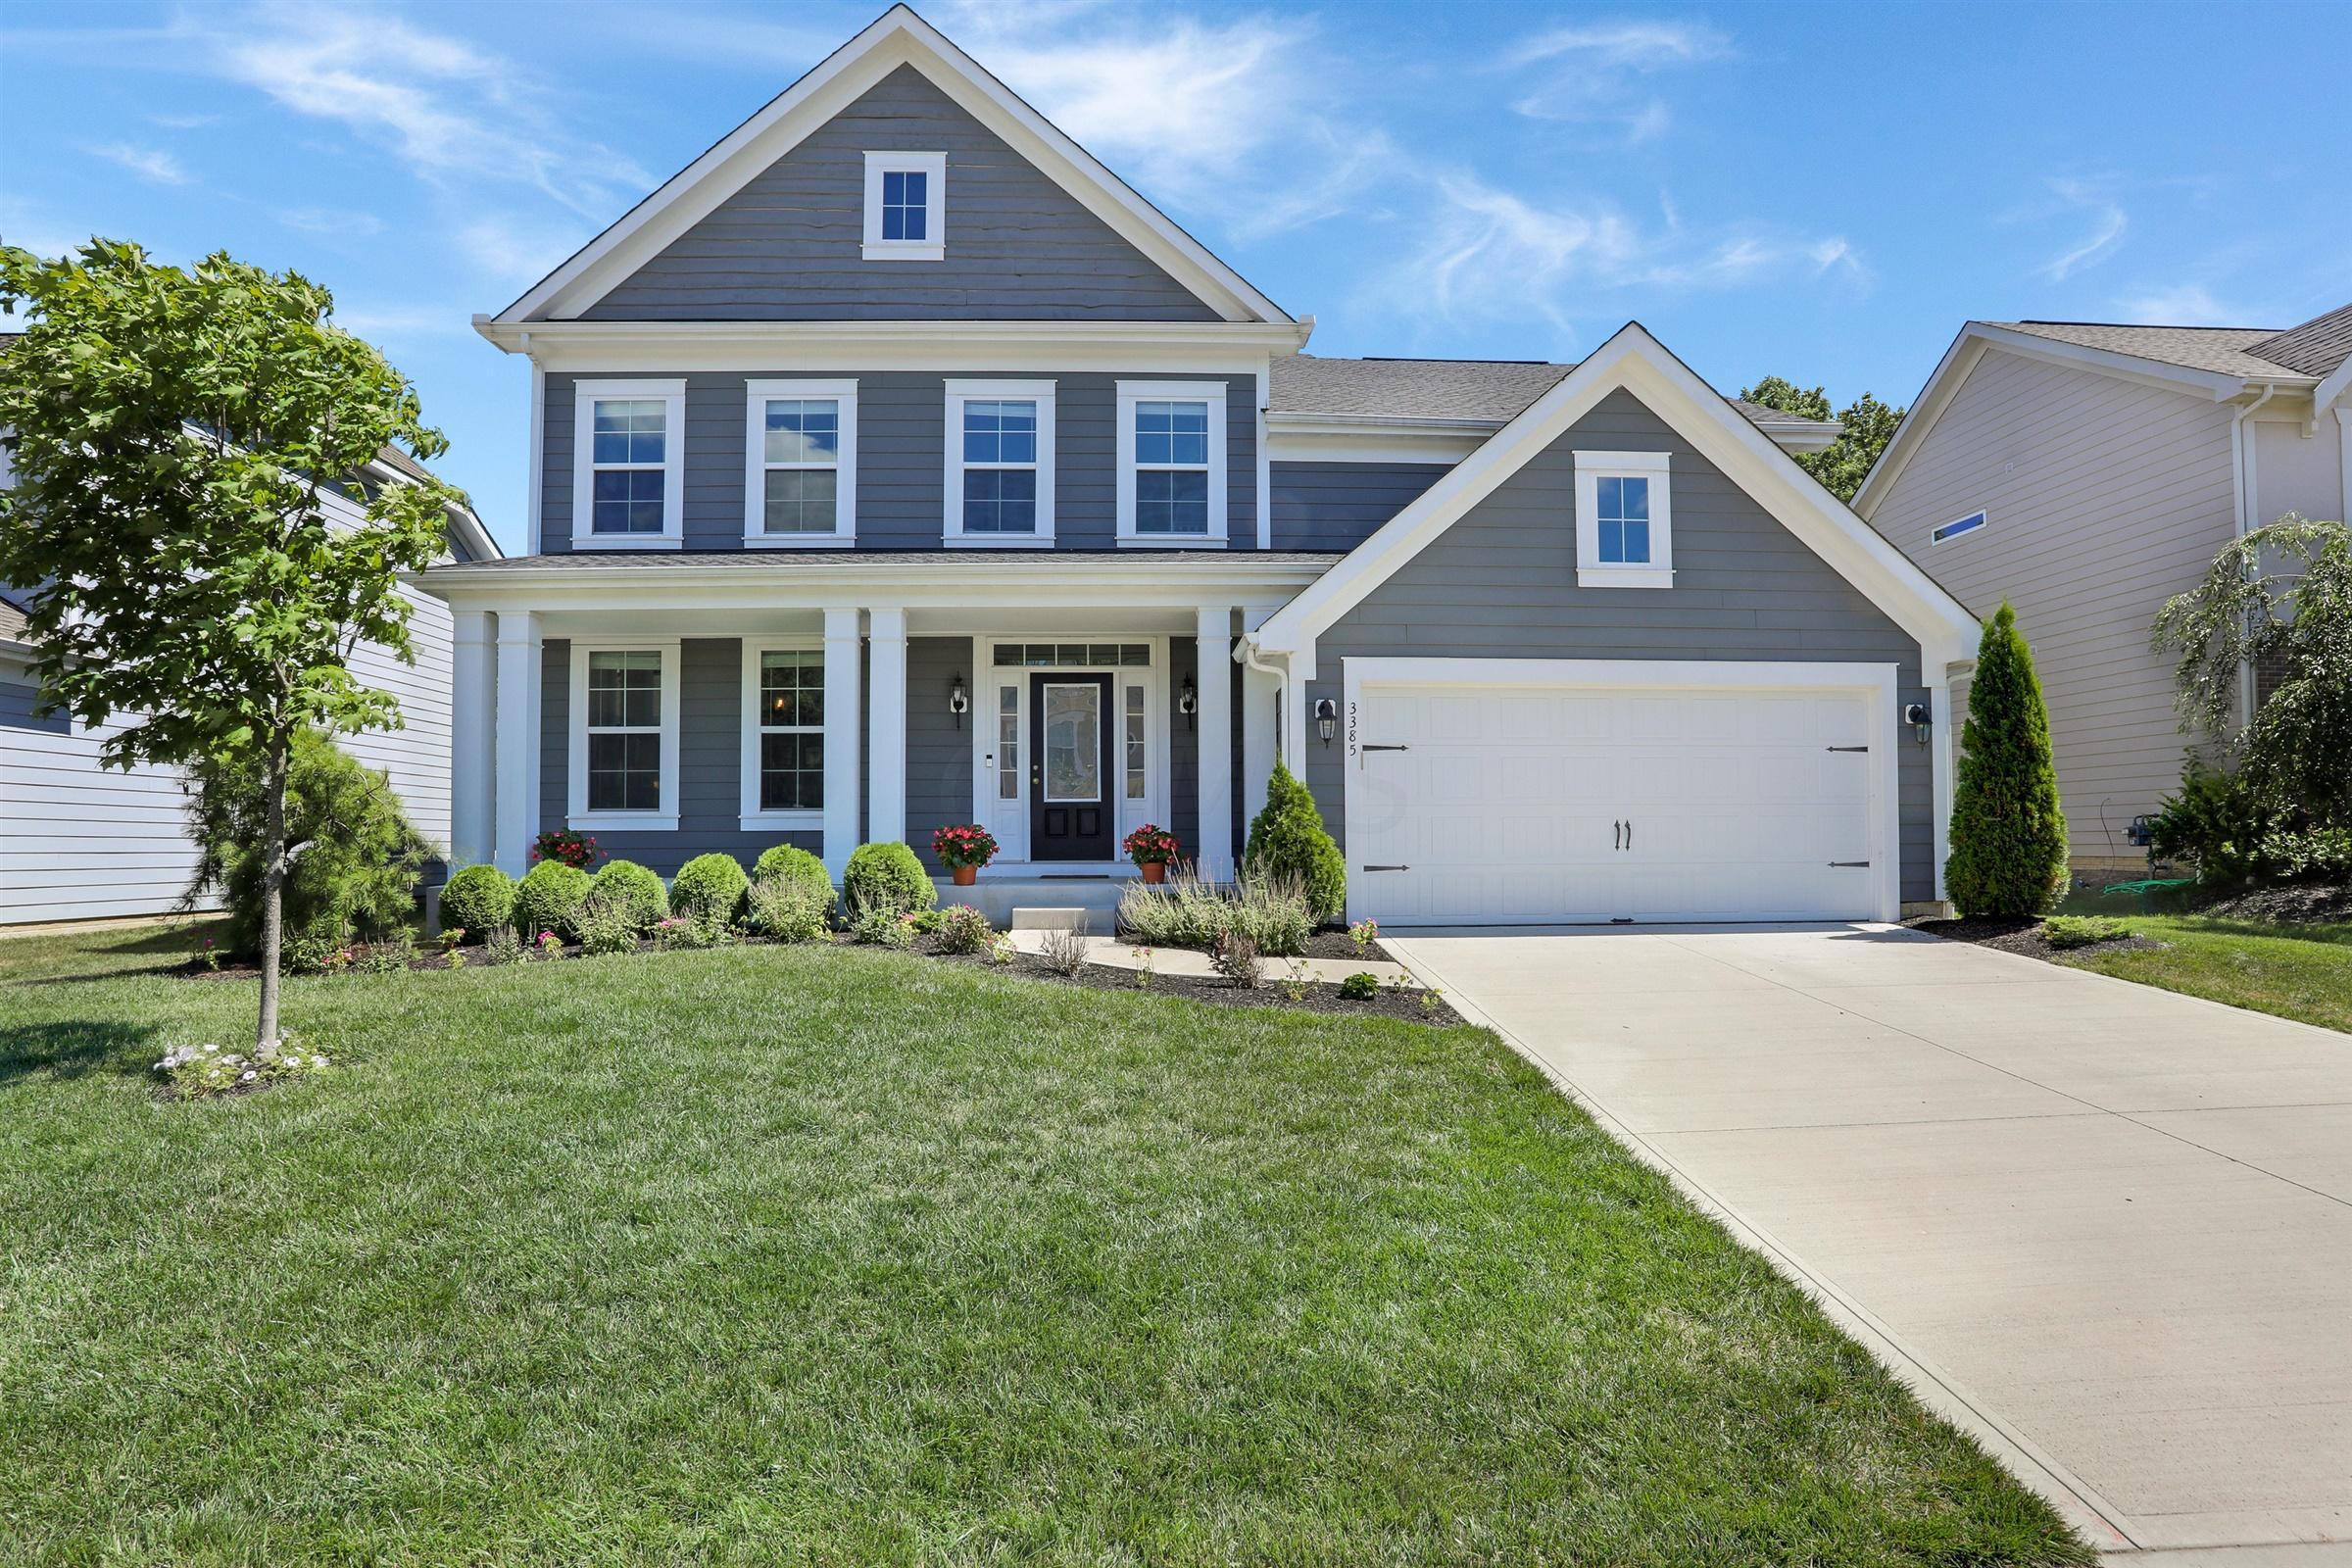 3385 Woodland Drive, Hilliard, Ohio 43026, 4 Bedrooms Bedrooms, ,4 BathroomsBathrooms,Residential,For Sale,Woodland,221000490